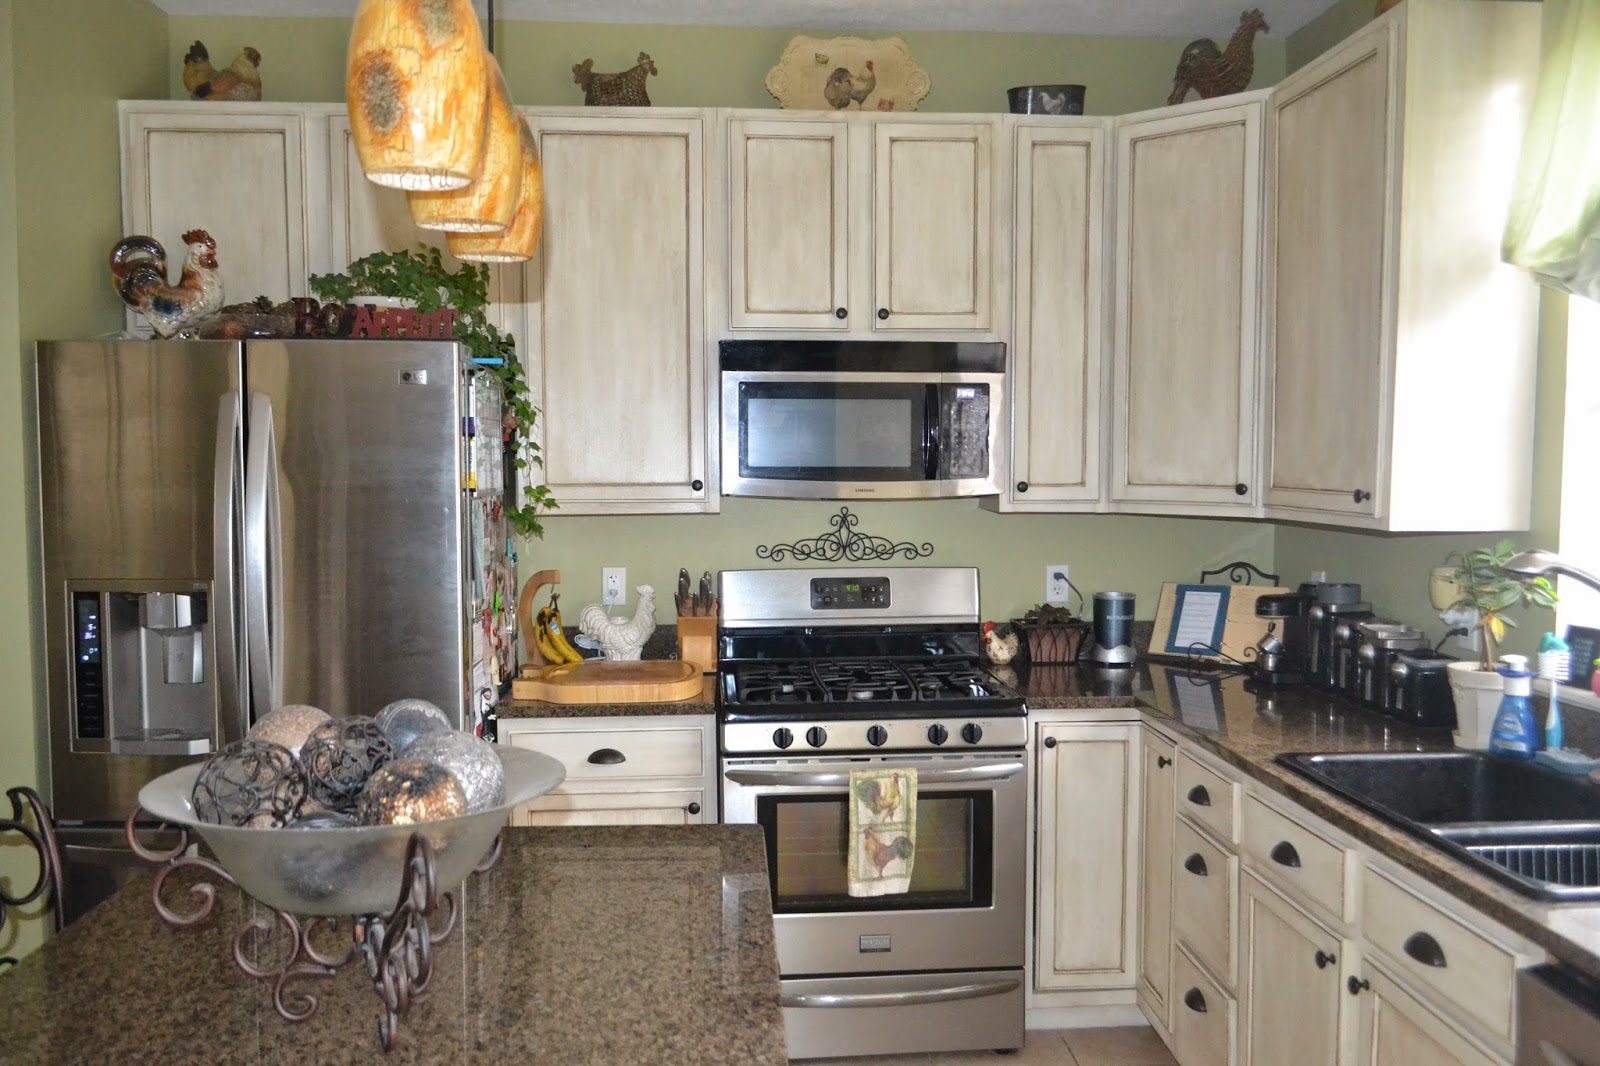 Used Kitchen Cabinets Denver White Glazed Cabinet Transformations A Review A Year Later